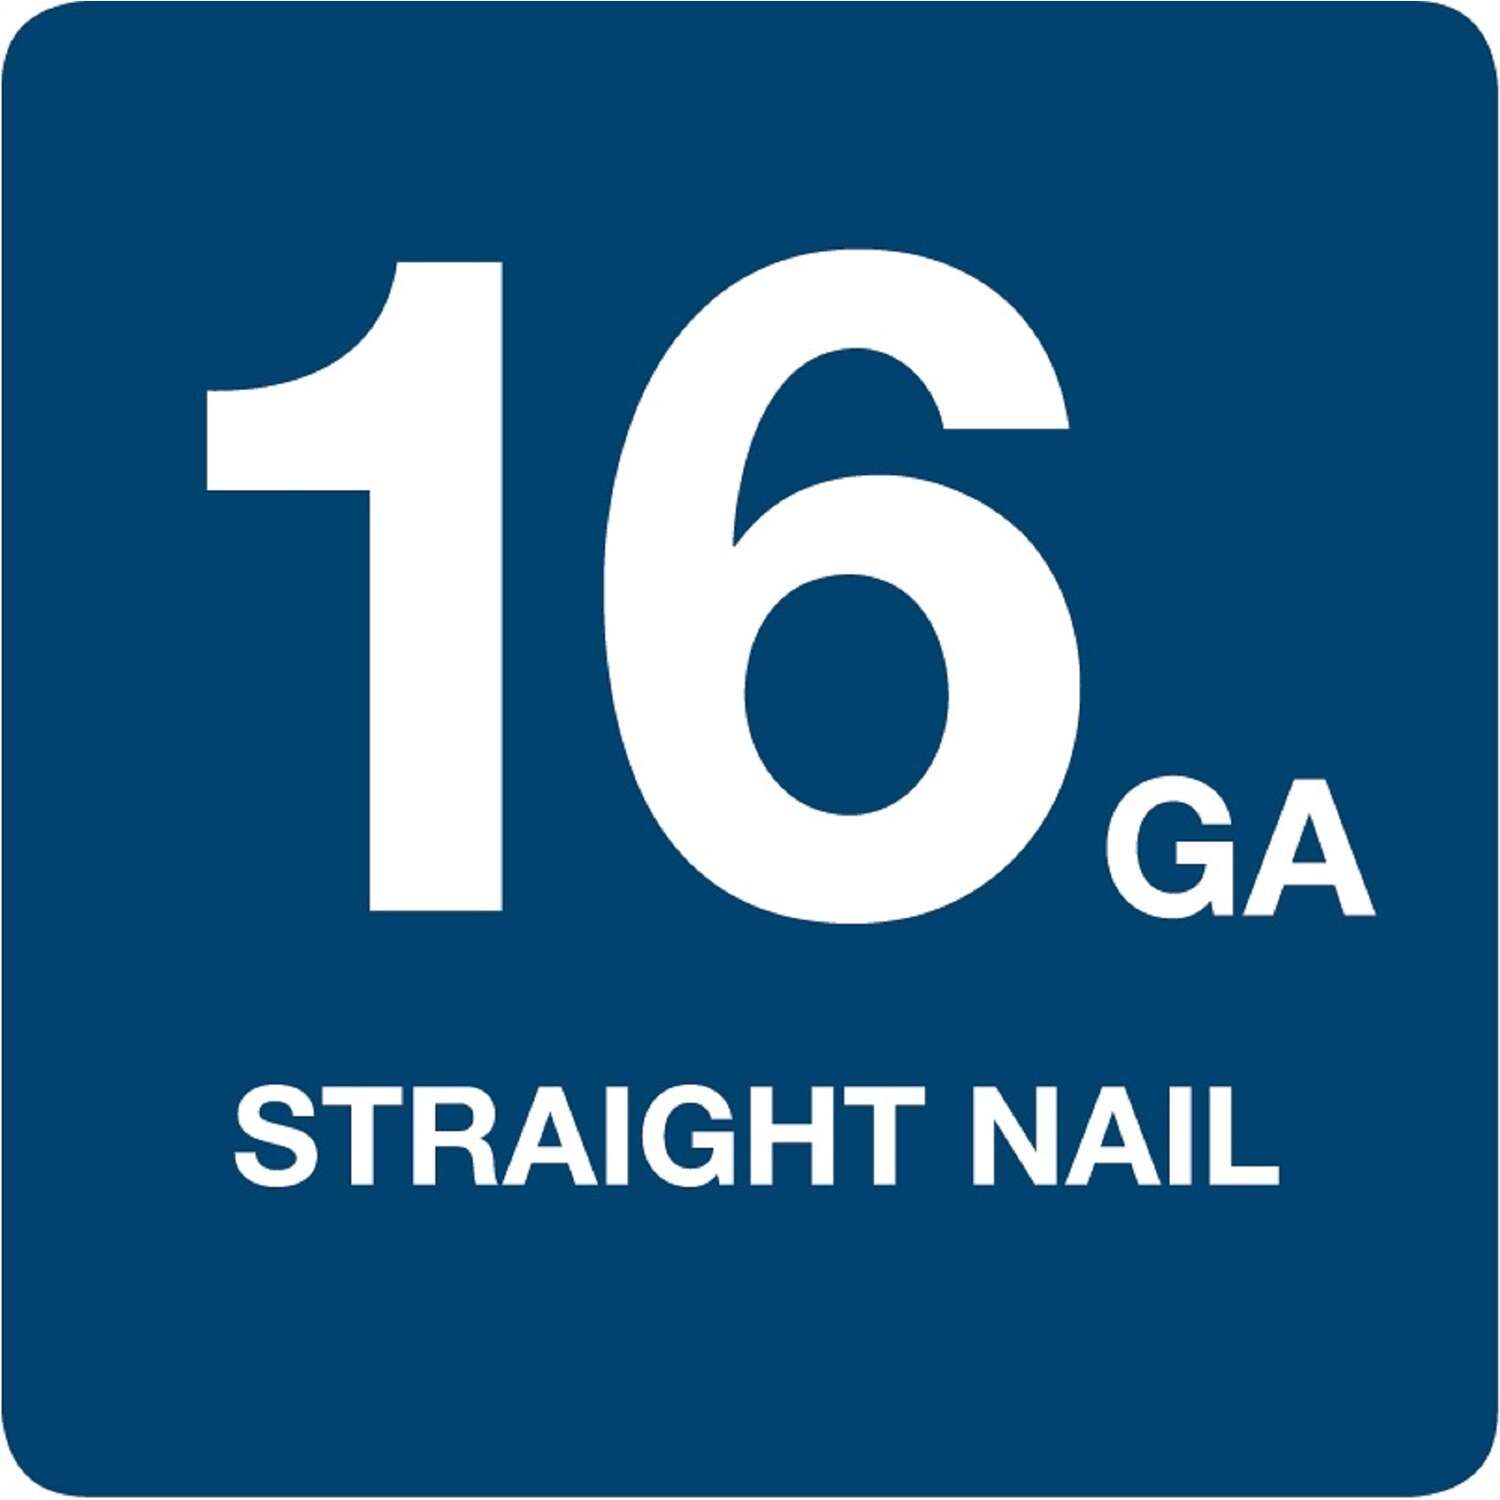 Grip-Rite  16 Ga. Smooth Shank  Straight Strip  Finish Nails  2 in. L x 0.06 in. Dia. 2500 count